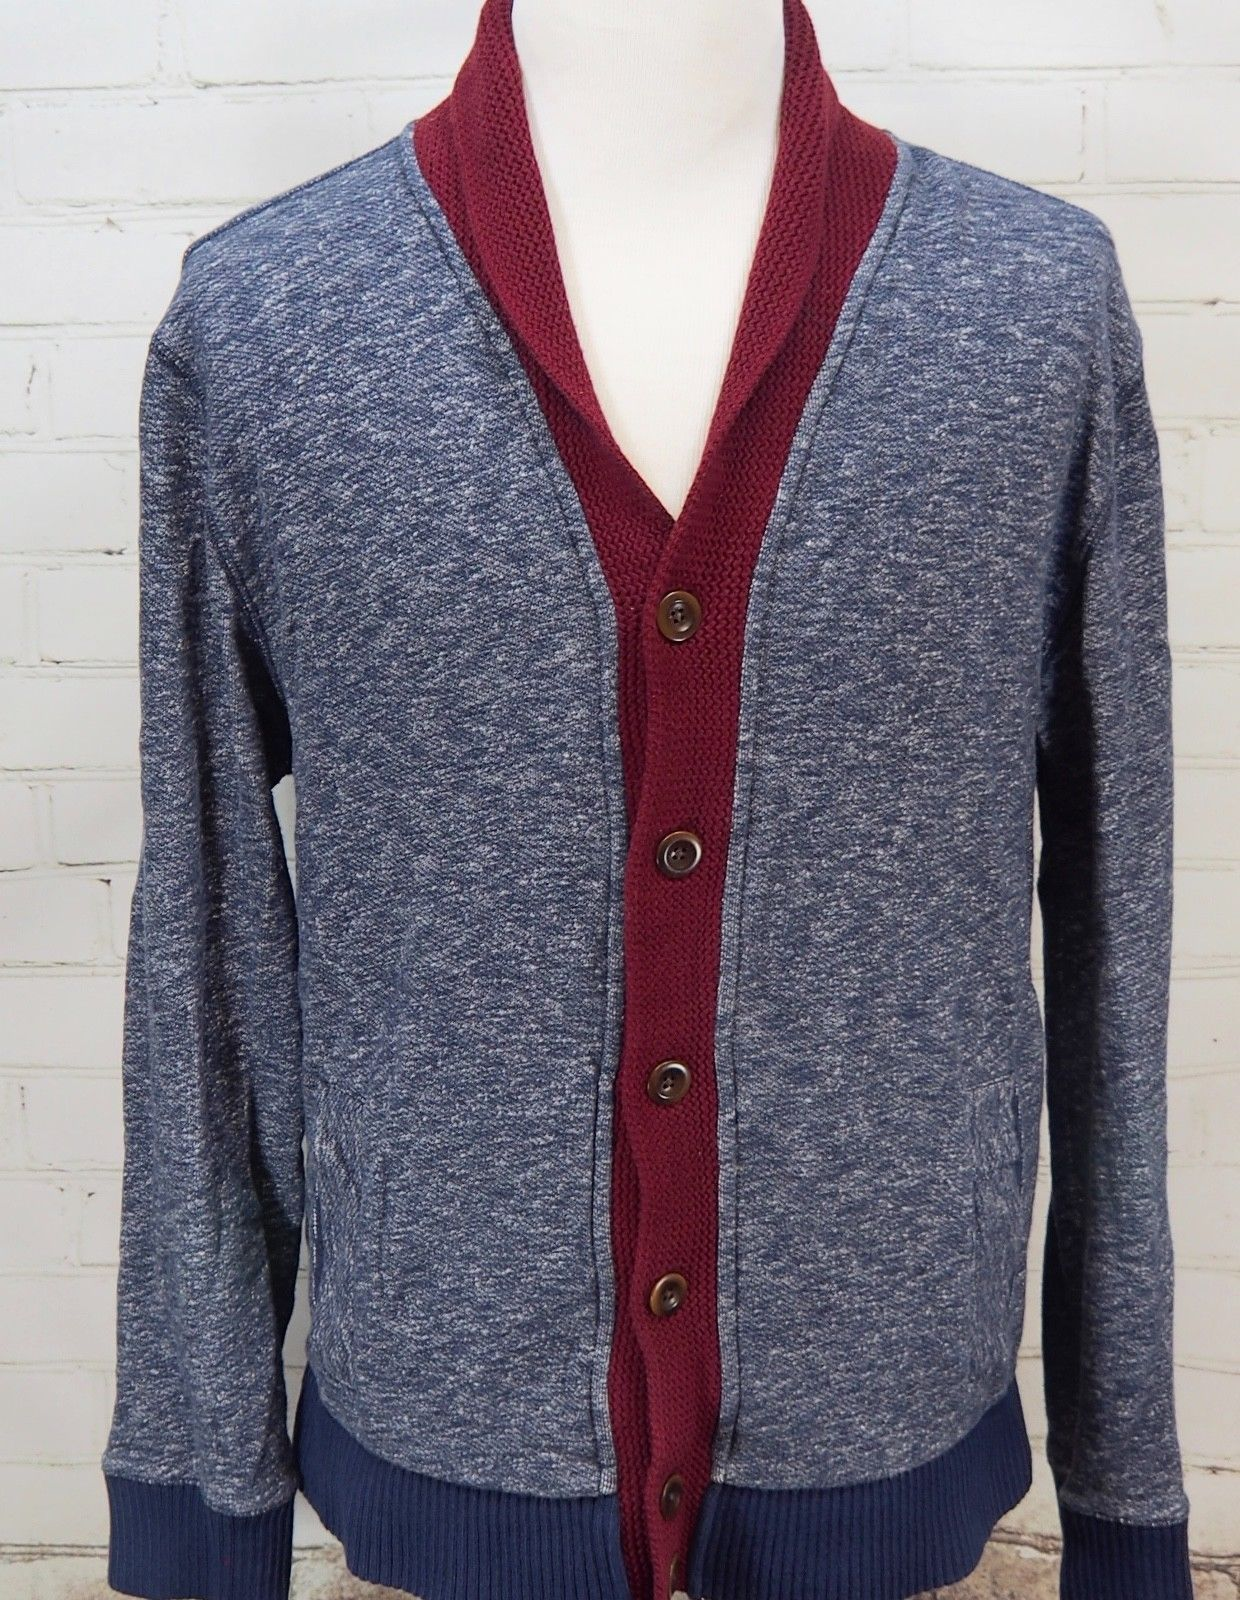 8cbd35a48a01 57. 57. Previous. TOMMY HILFIGER Men s Shawl Collar Cardigan Sweater Navy  Blue Marl Knit XL Cotton